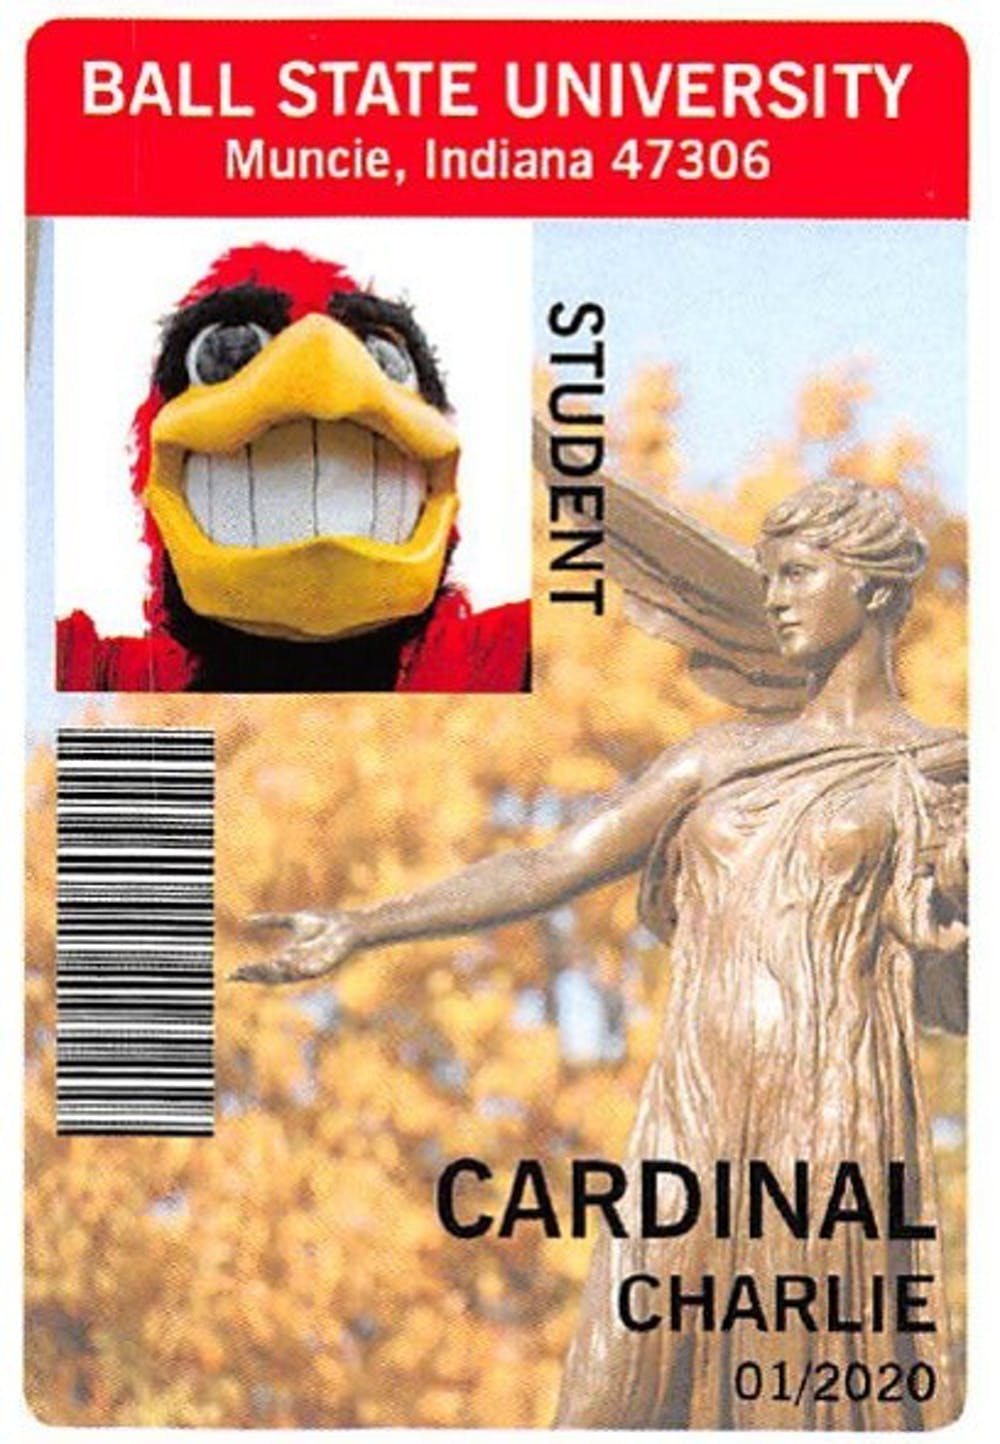 <p>On Aug. 15, the cost to replace your student ID card will increase to $25 from $10. Both Indiana University and Purdue University charge $25 to replace student IDs.&nbsp;<em>PHOTO PROVIDED BY NANCY CRONK</em></p>